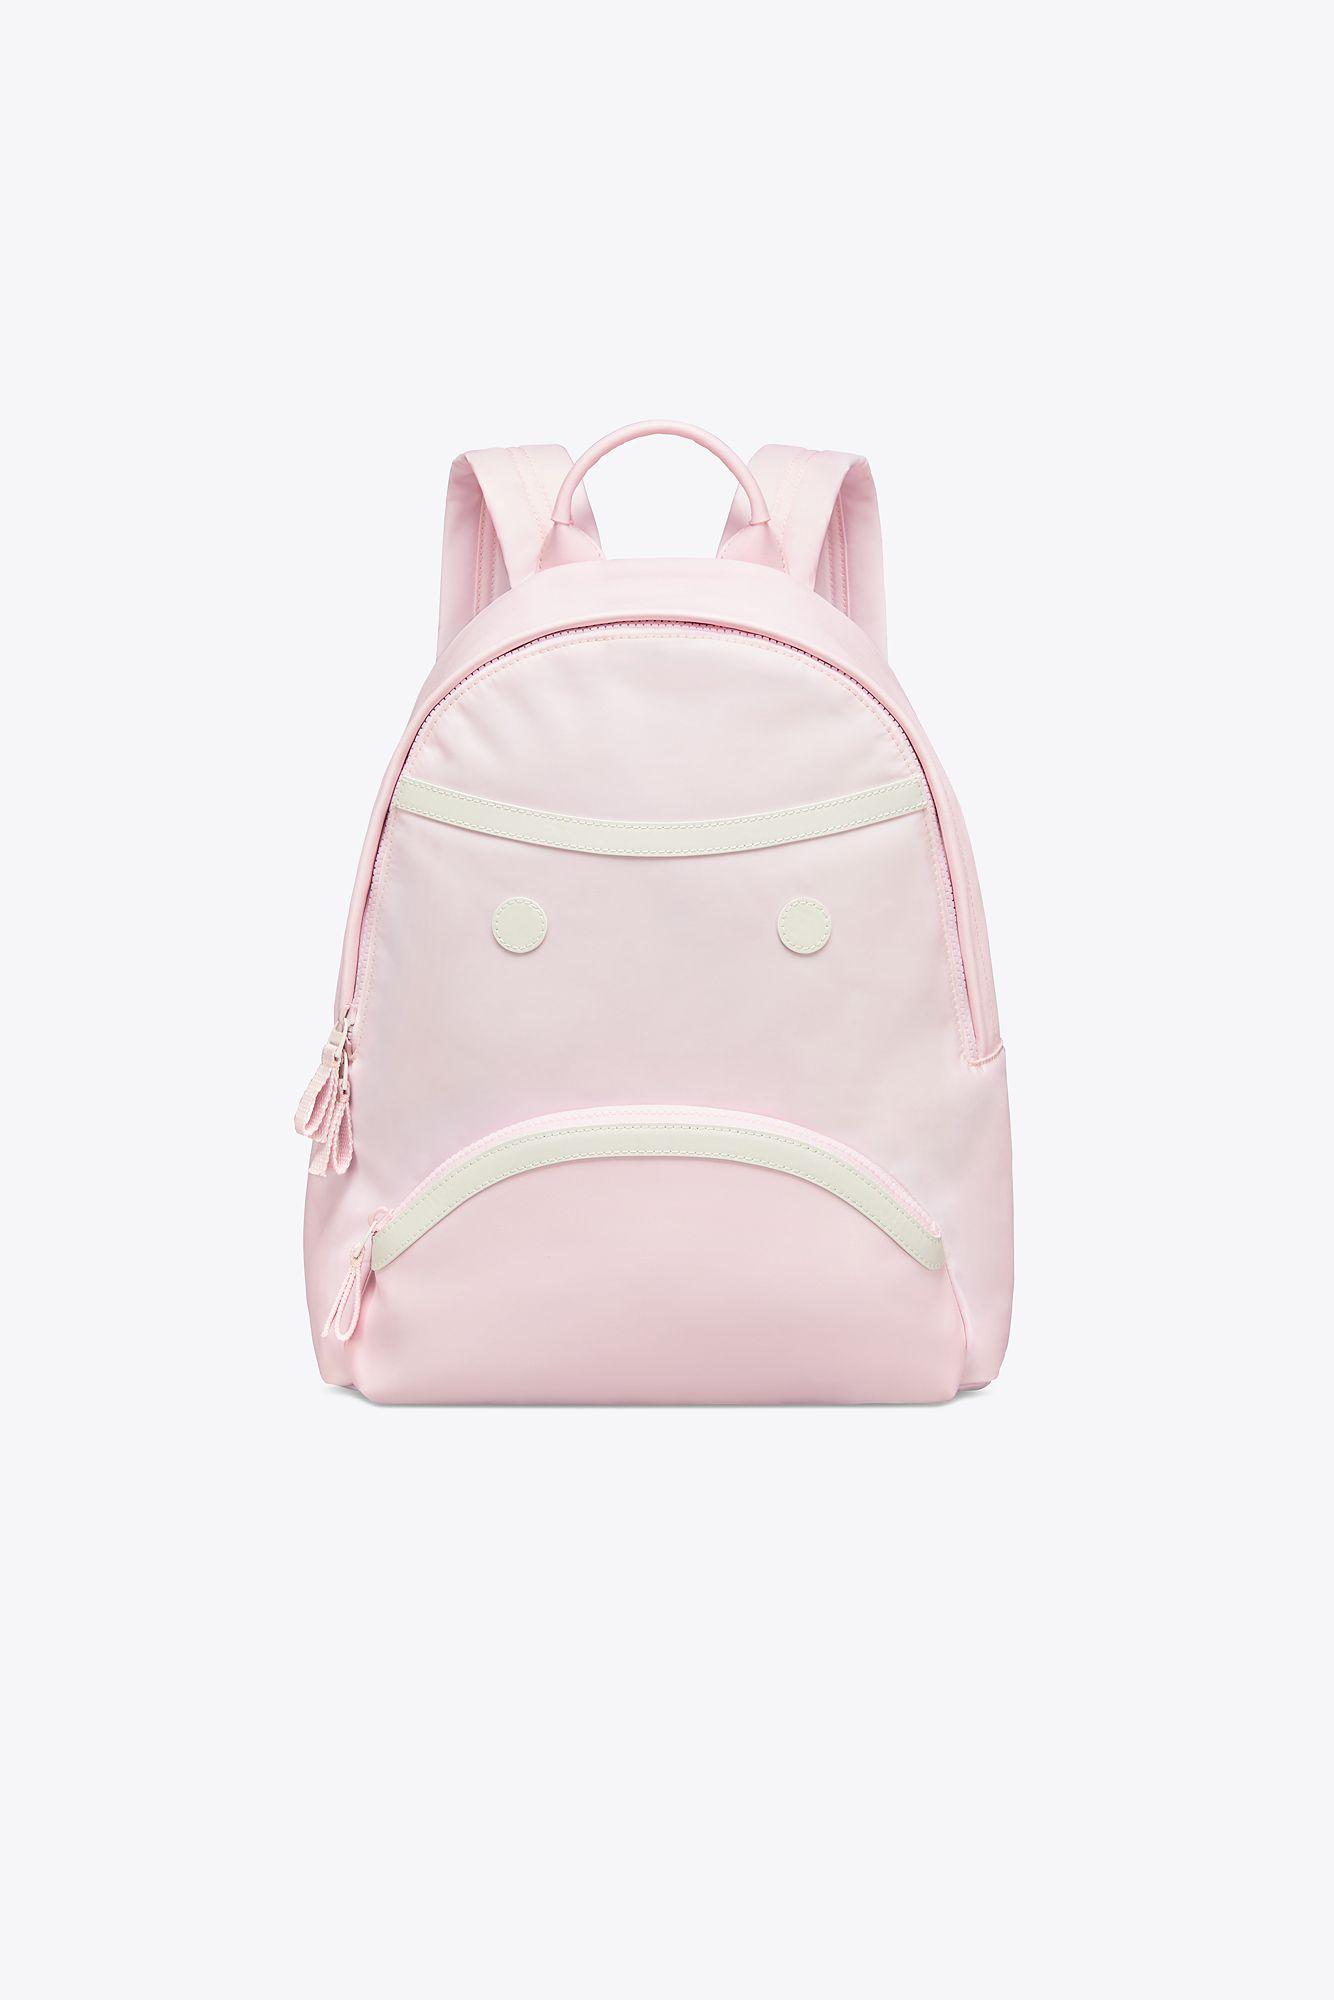 8203885e7623 Lyst - Tory Sport Grumps Backpack